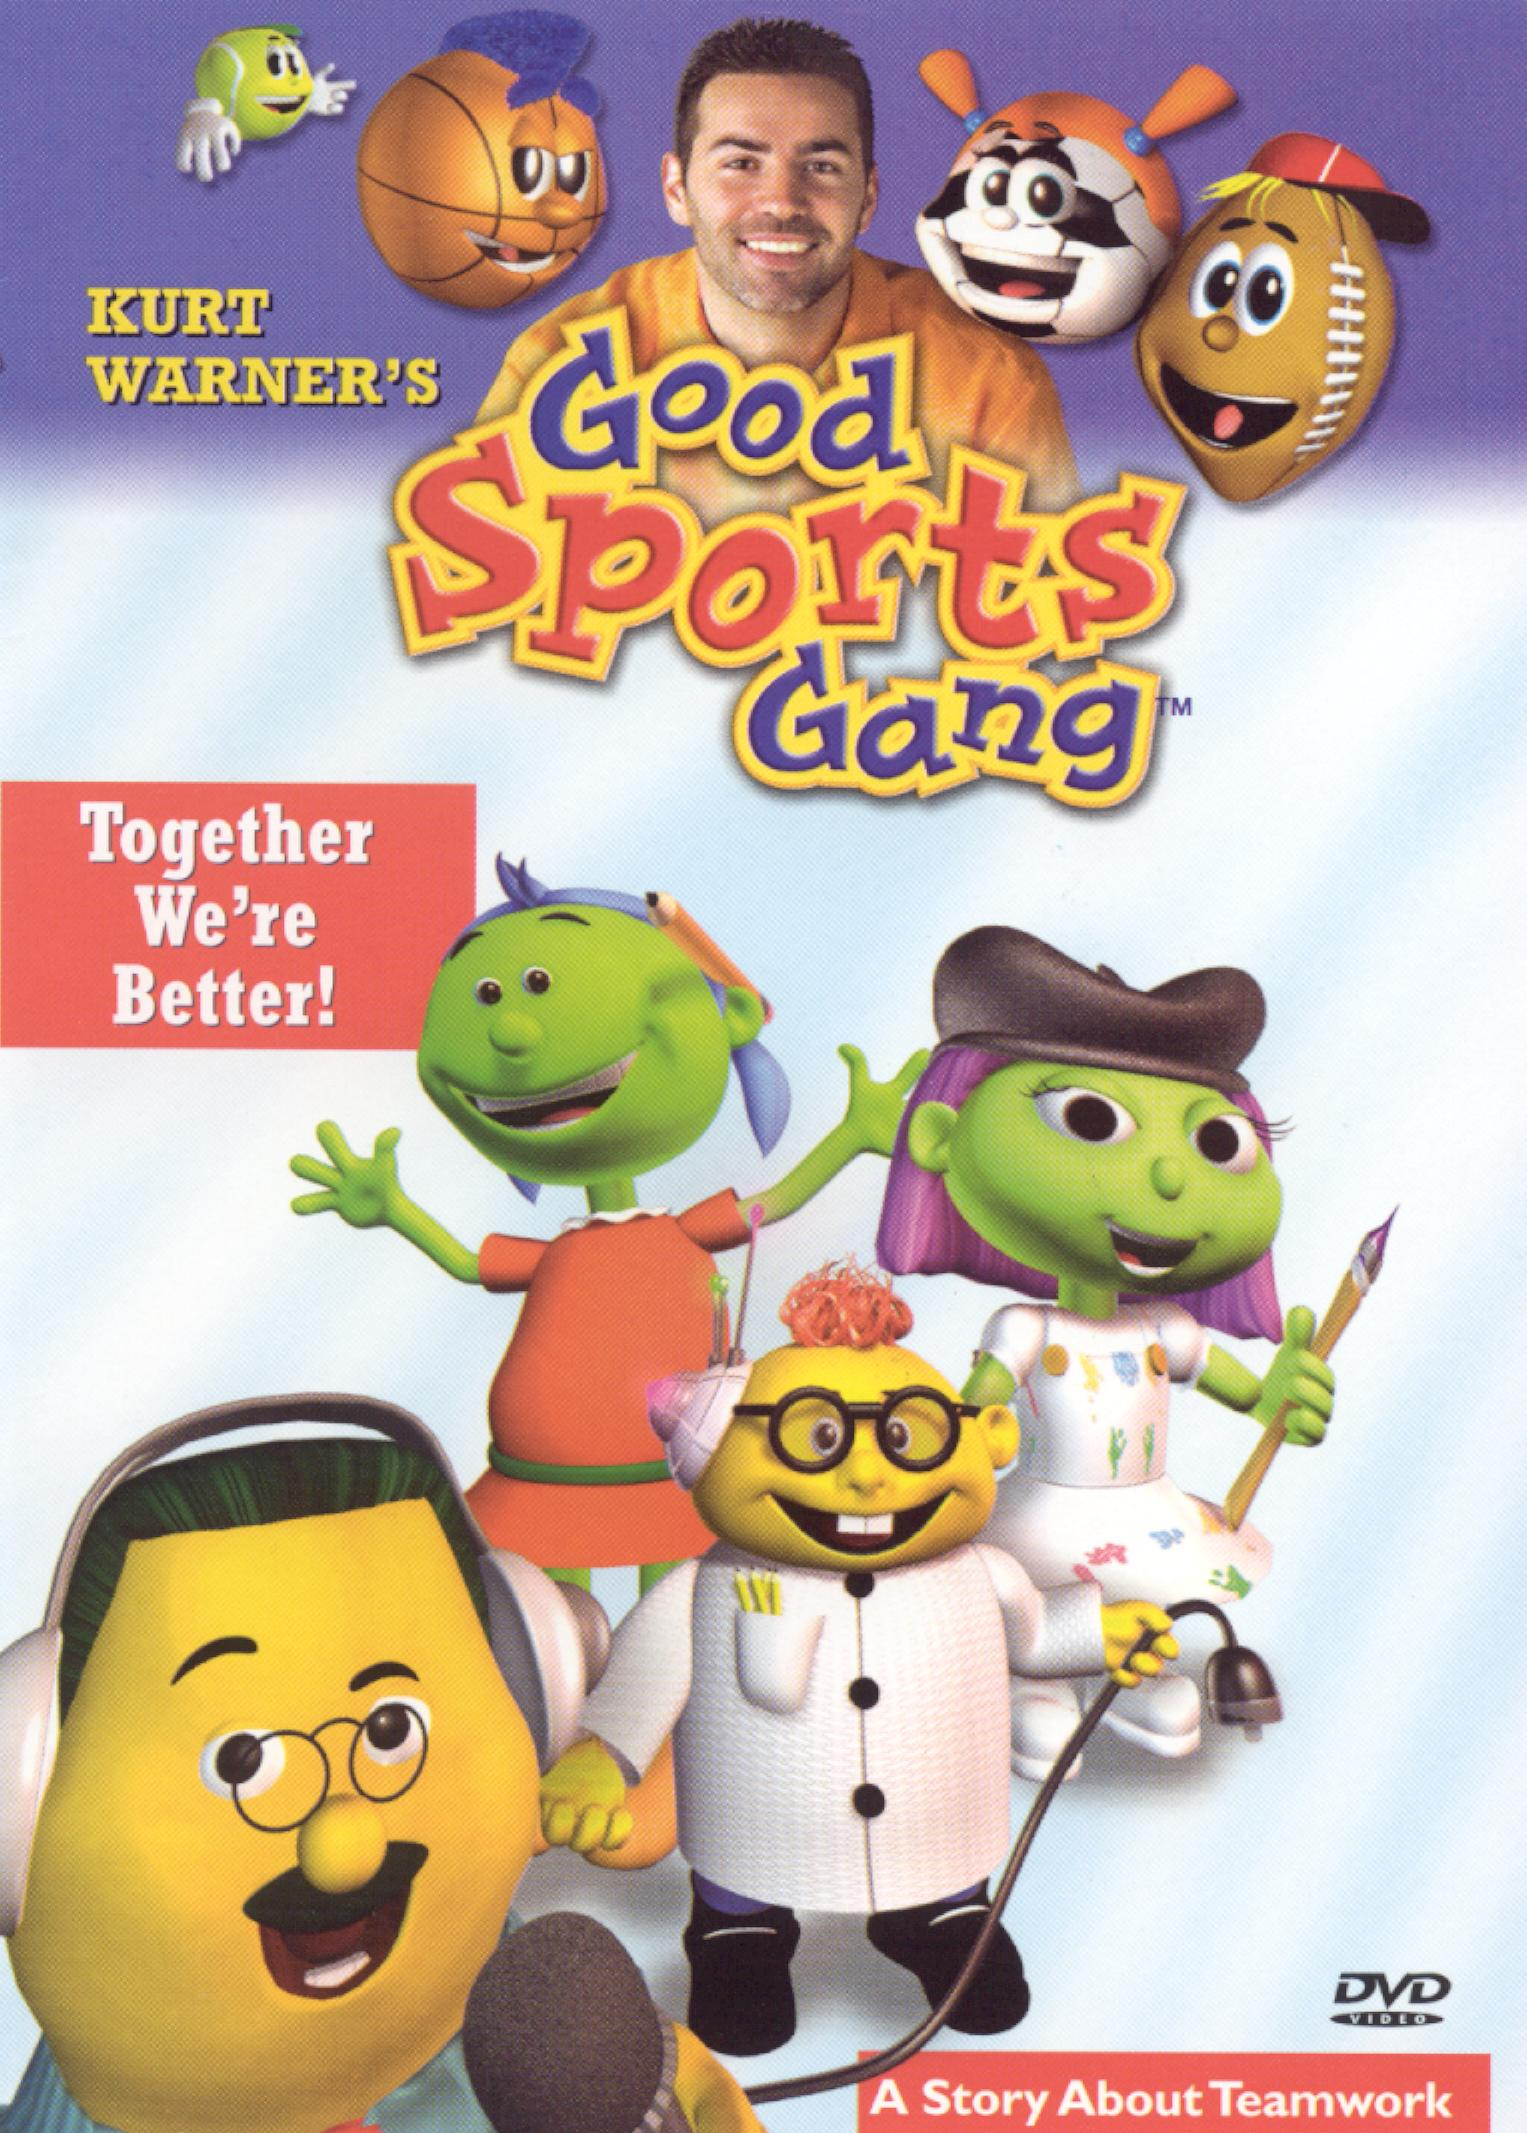 Kurt Warner's Good Sports Gang, Episode 2: Together We're Better! A Story About Teamwork